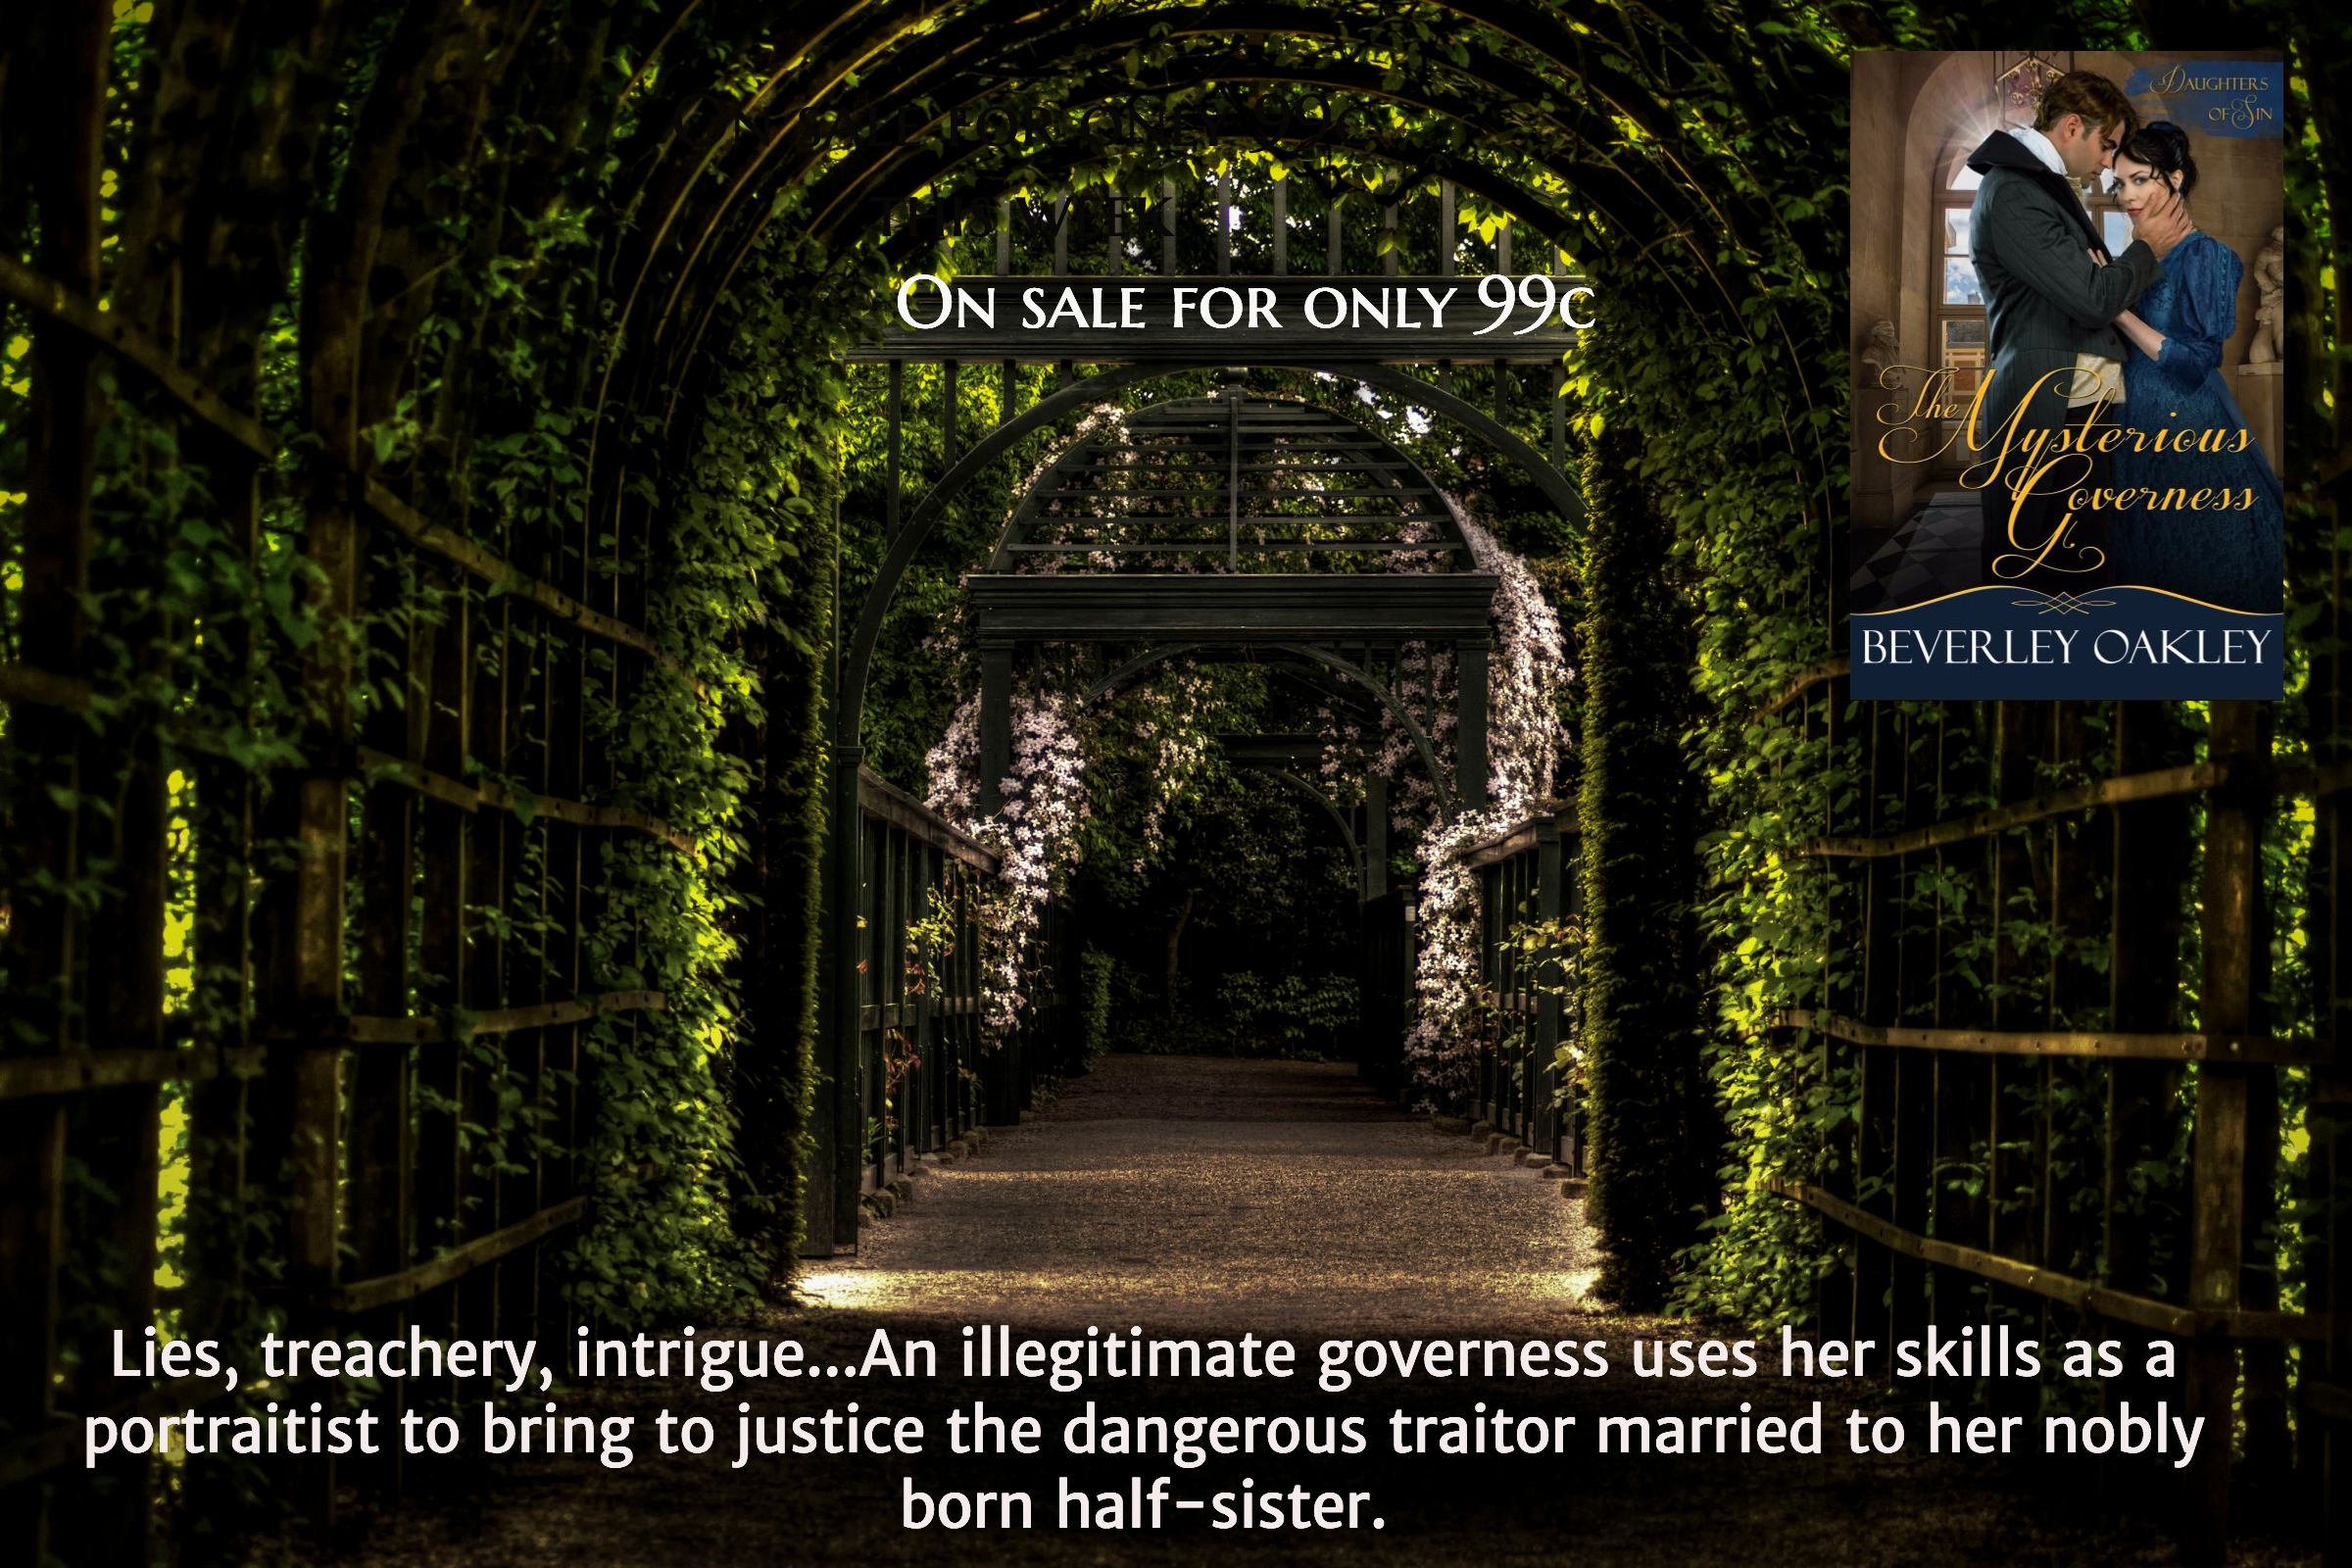 Lies, treachery, intrigue...An illegitimate governess uses her skills as a portraitist to bring to justice the dangerous traitor married to her nobly born half-sister. / On sale for only 99c this week / On sale for only 99c